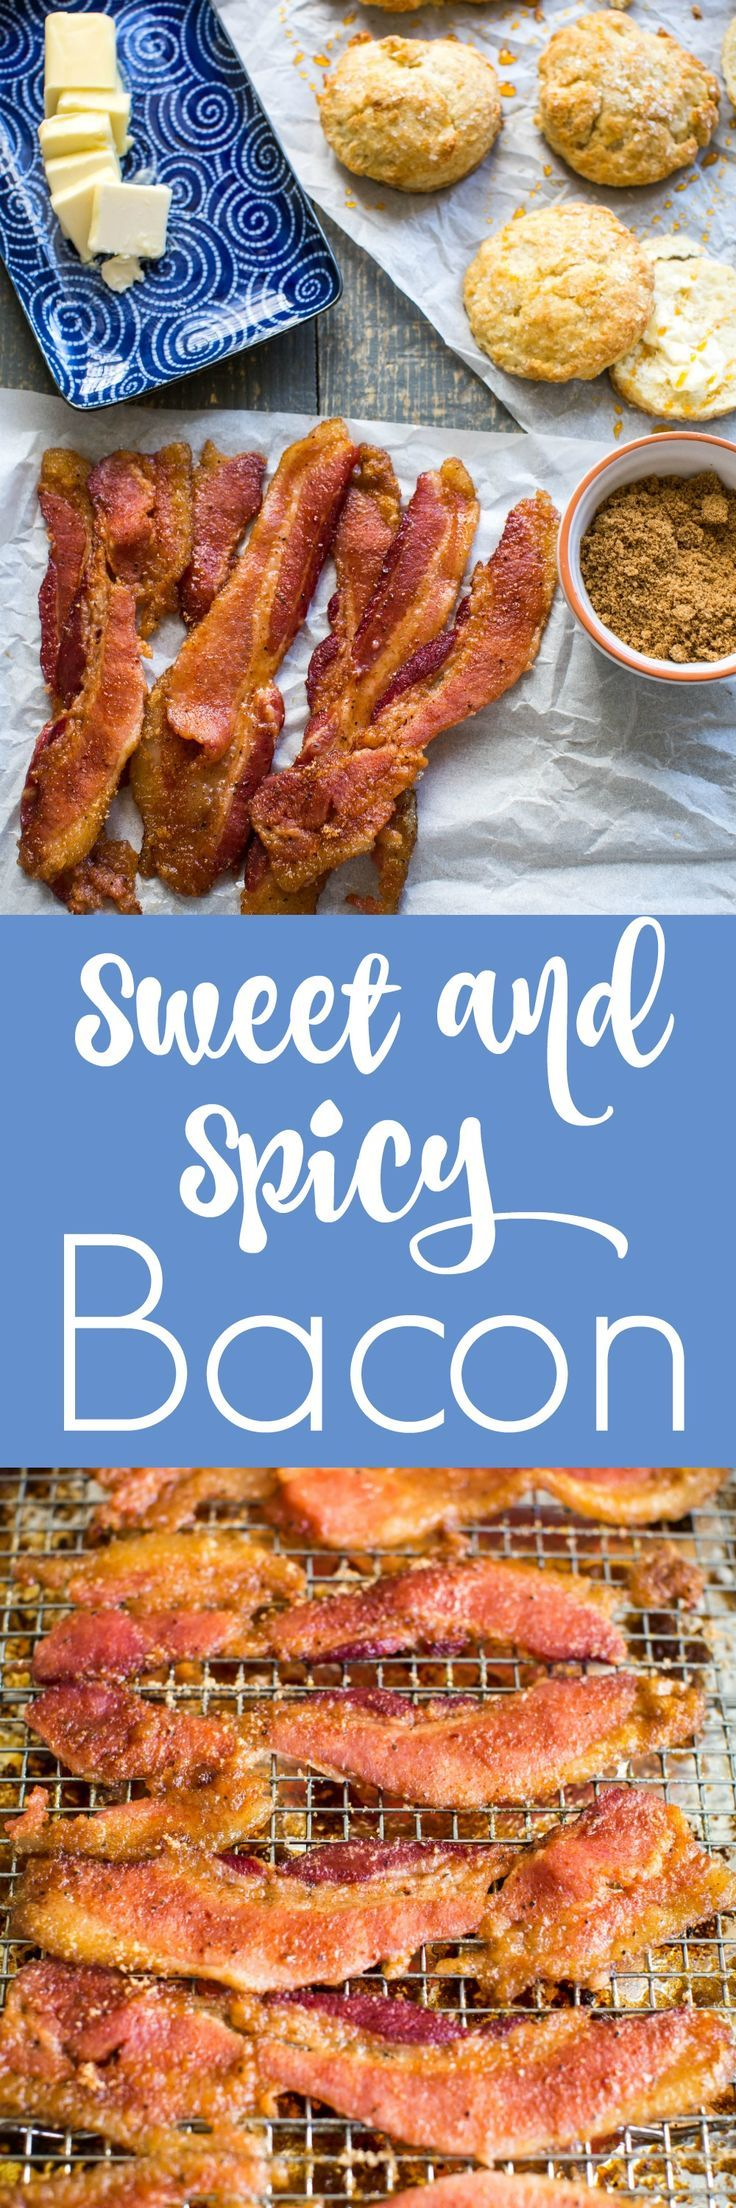 Sweet and Spicy Bacon inspired by the famous Chronic Bacon at Nashville's Biscuit Love. A rub of brown sugar, cayenne pepper & spices make this bacon sweet, spicy & smokey.